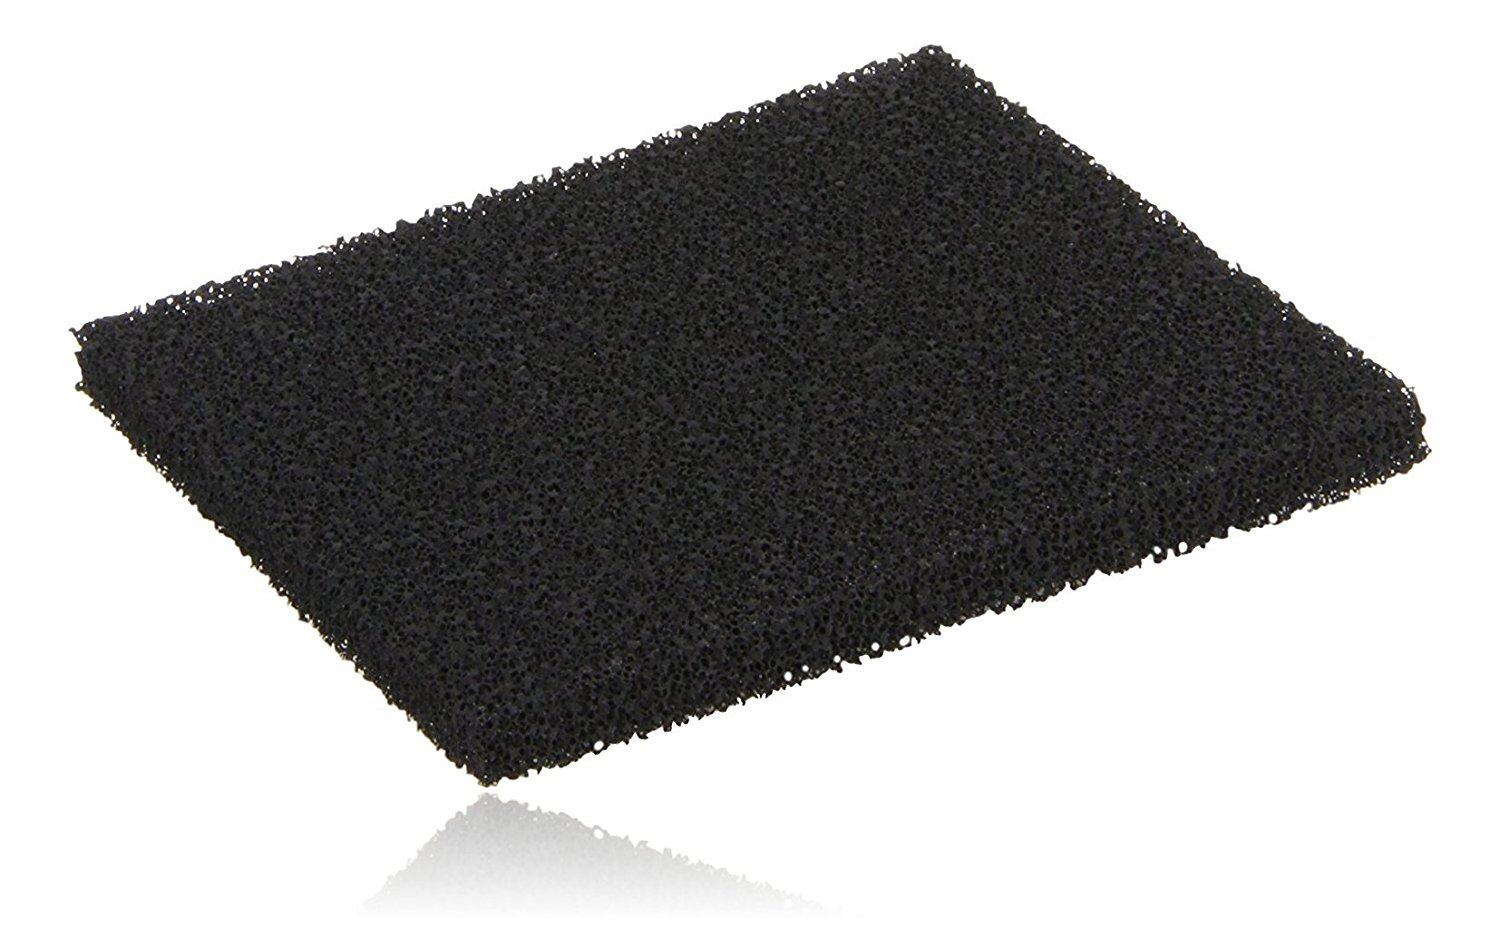 Valtcan Carbon Filter Replacement Activated 5 Pack for Hakko/Xytronic/Aoyue Smoke Absorber 130 mm x 130 mm x 10 mm 5 1/8â € � x 5 1/8â € � x 3/8â € � B079D5W2C2